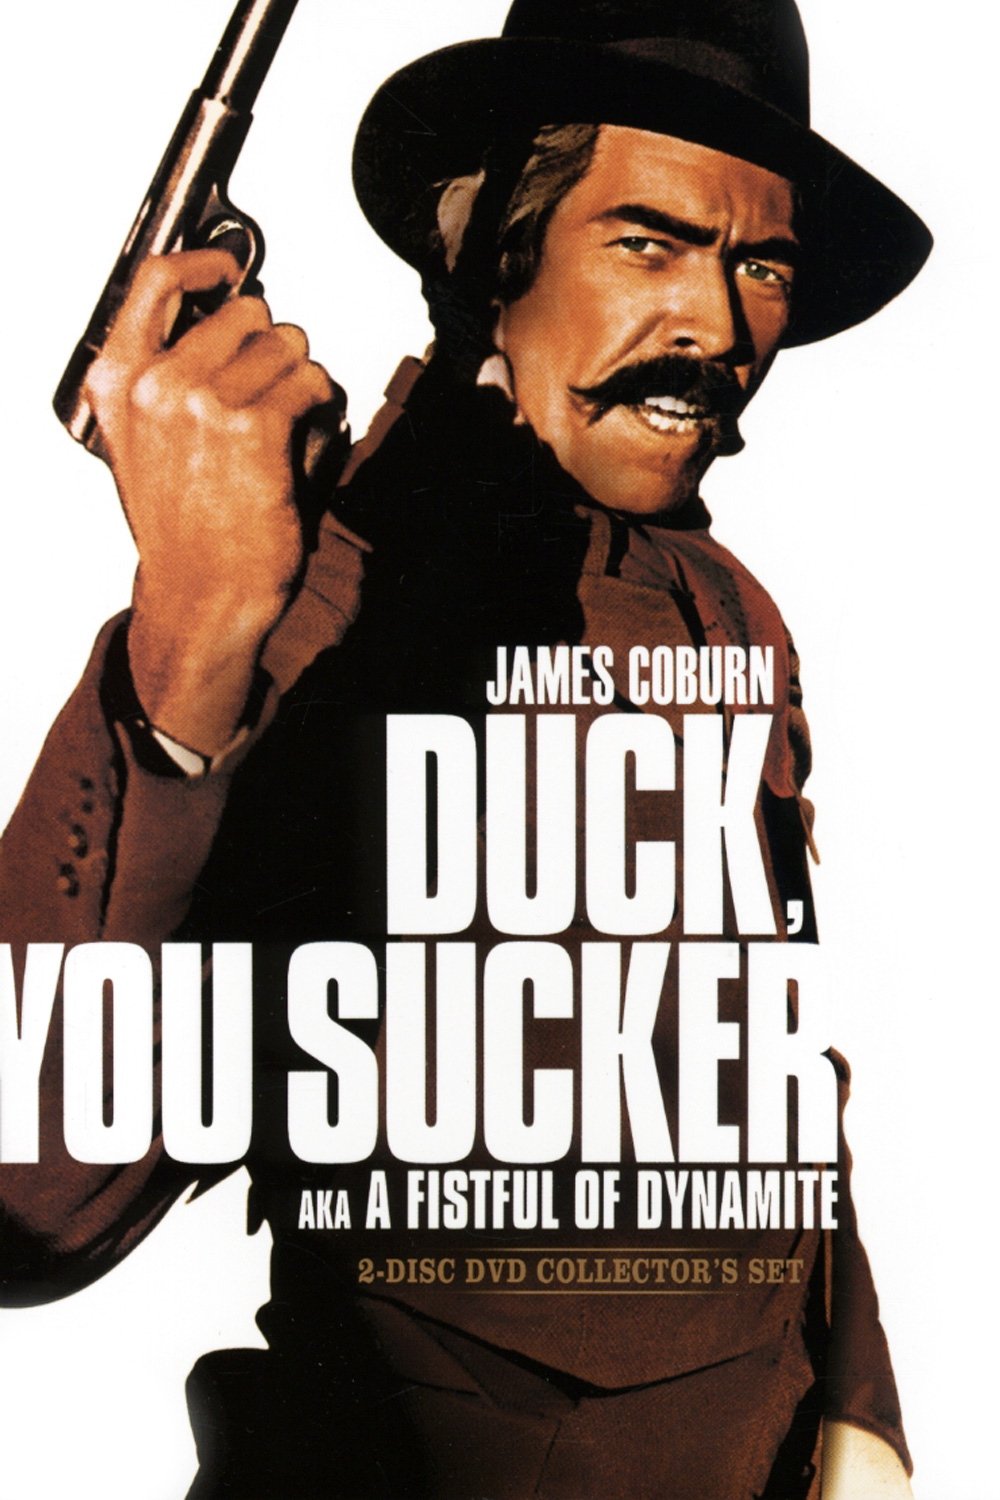 A fistful of dynamite James Coburn movie poster print